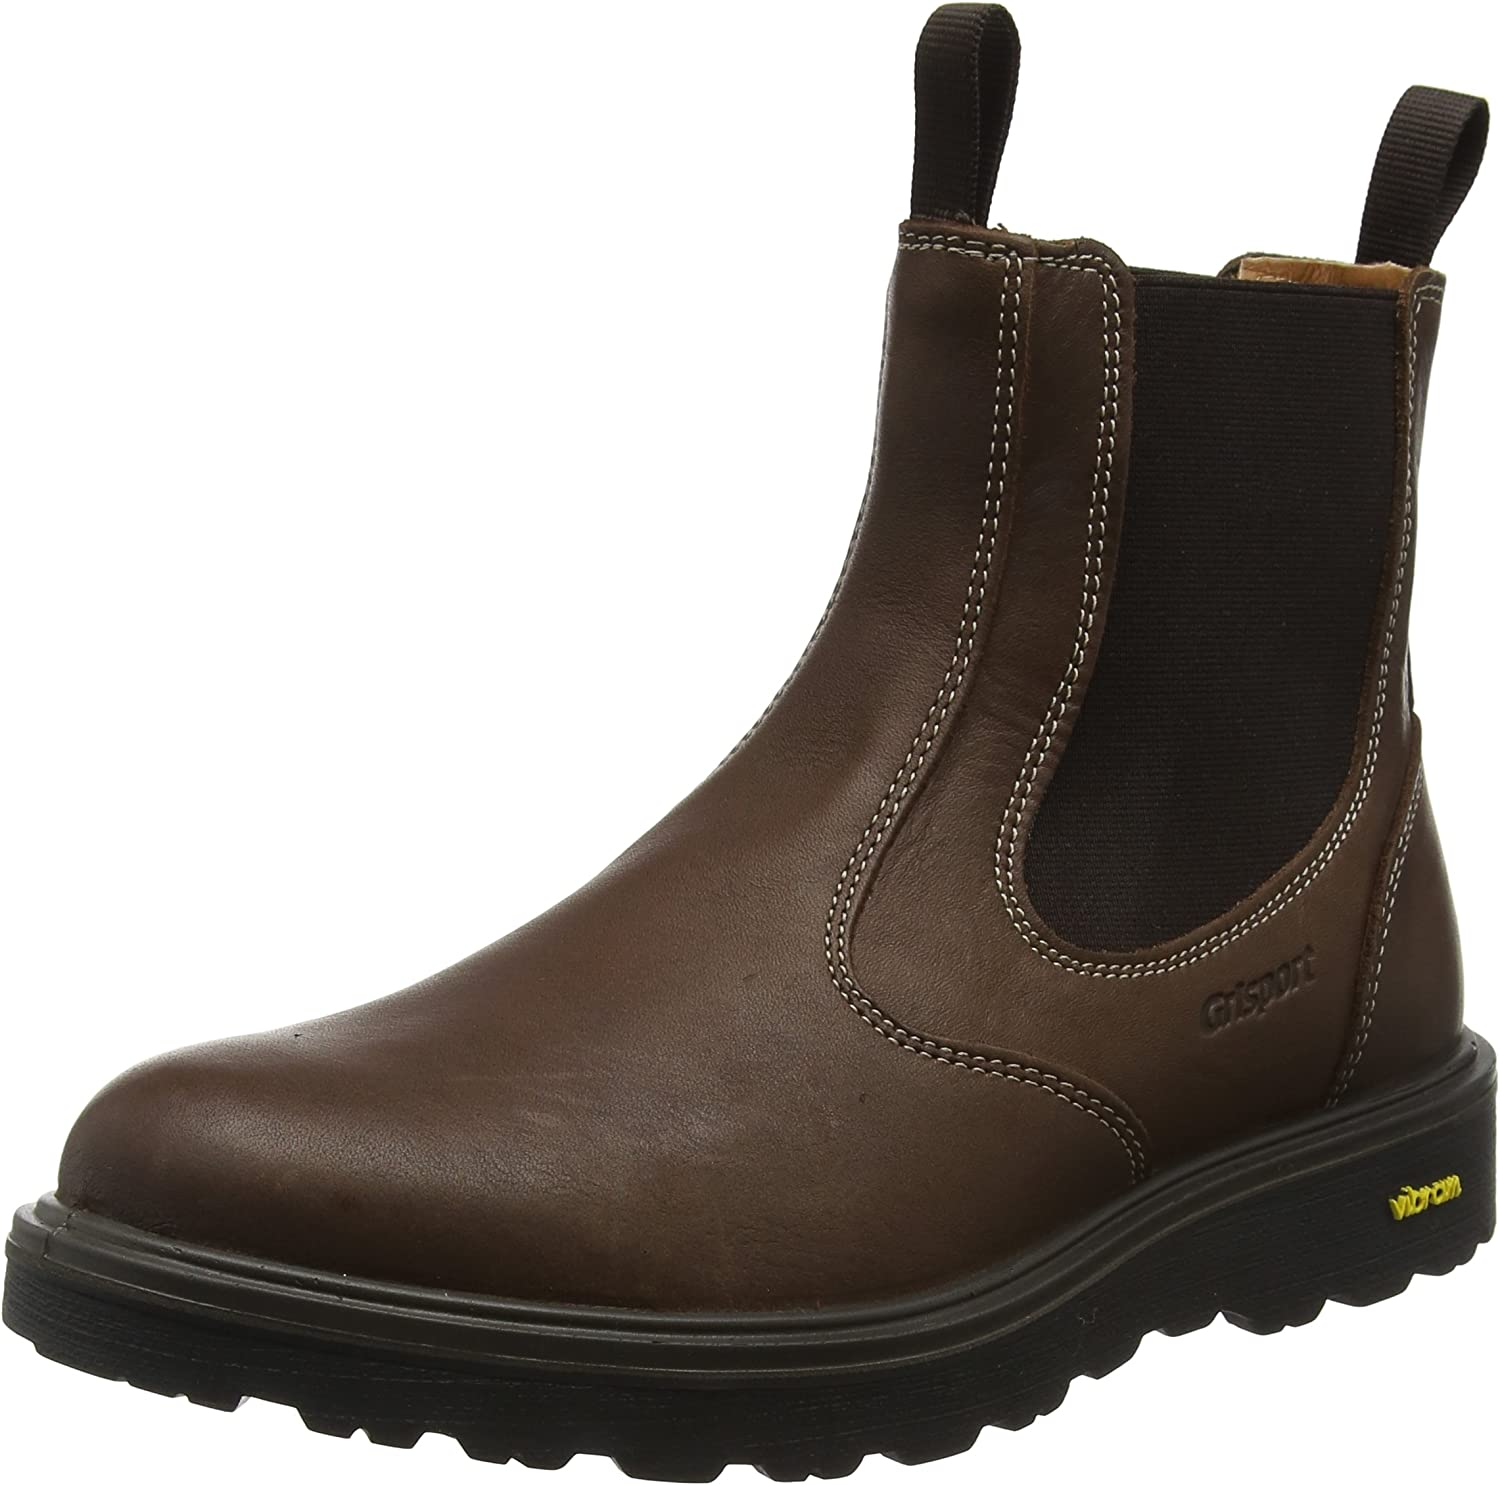 greyport Men's Crieff High Rise Chelsea Boots